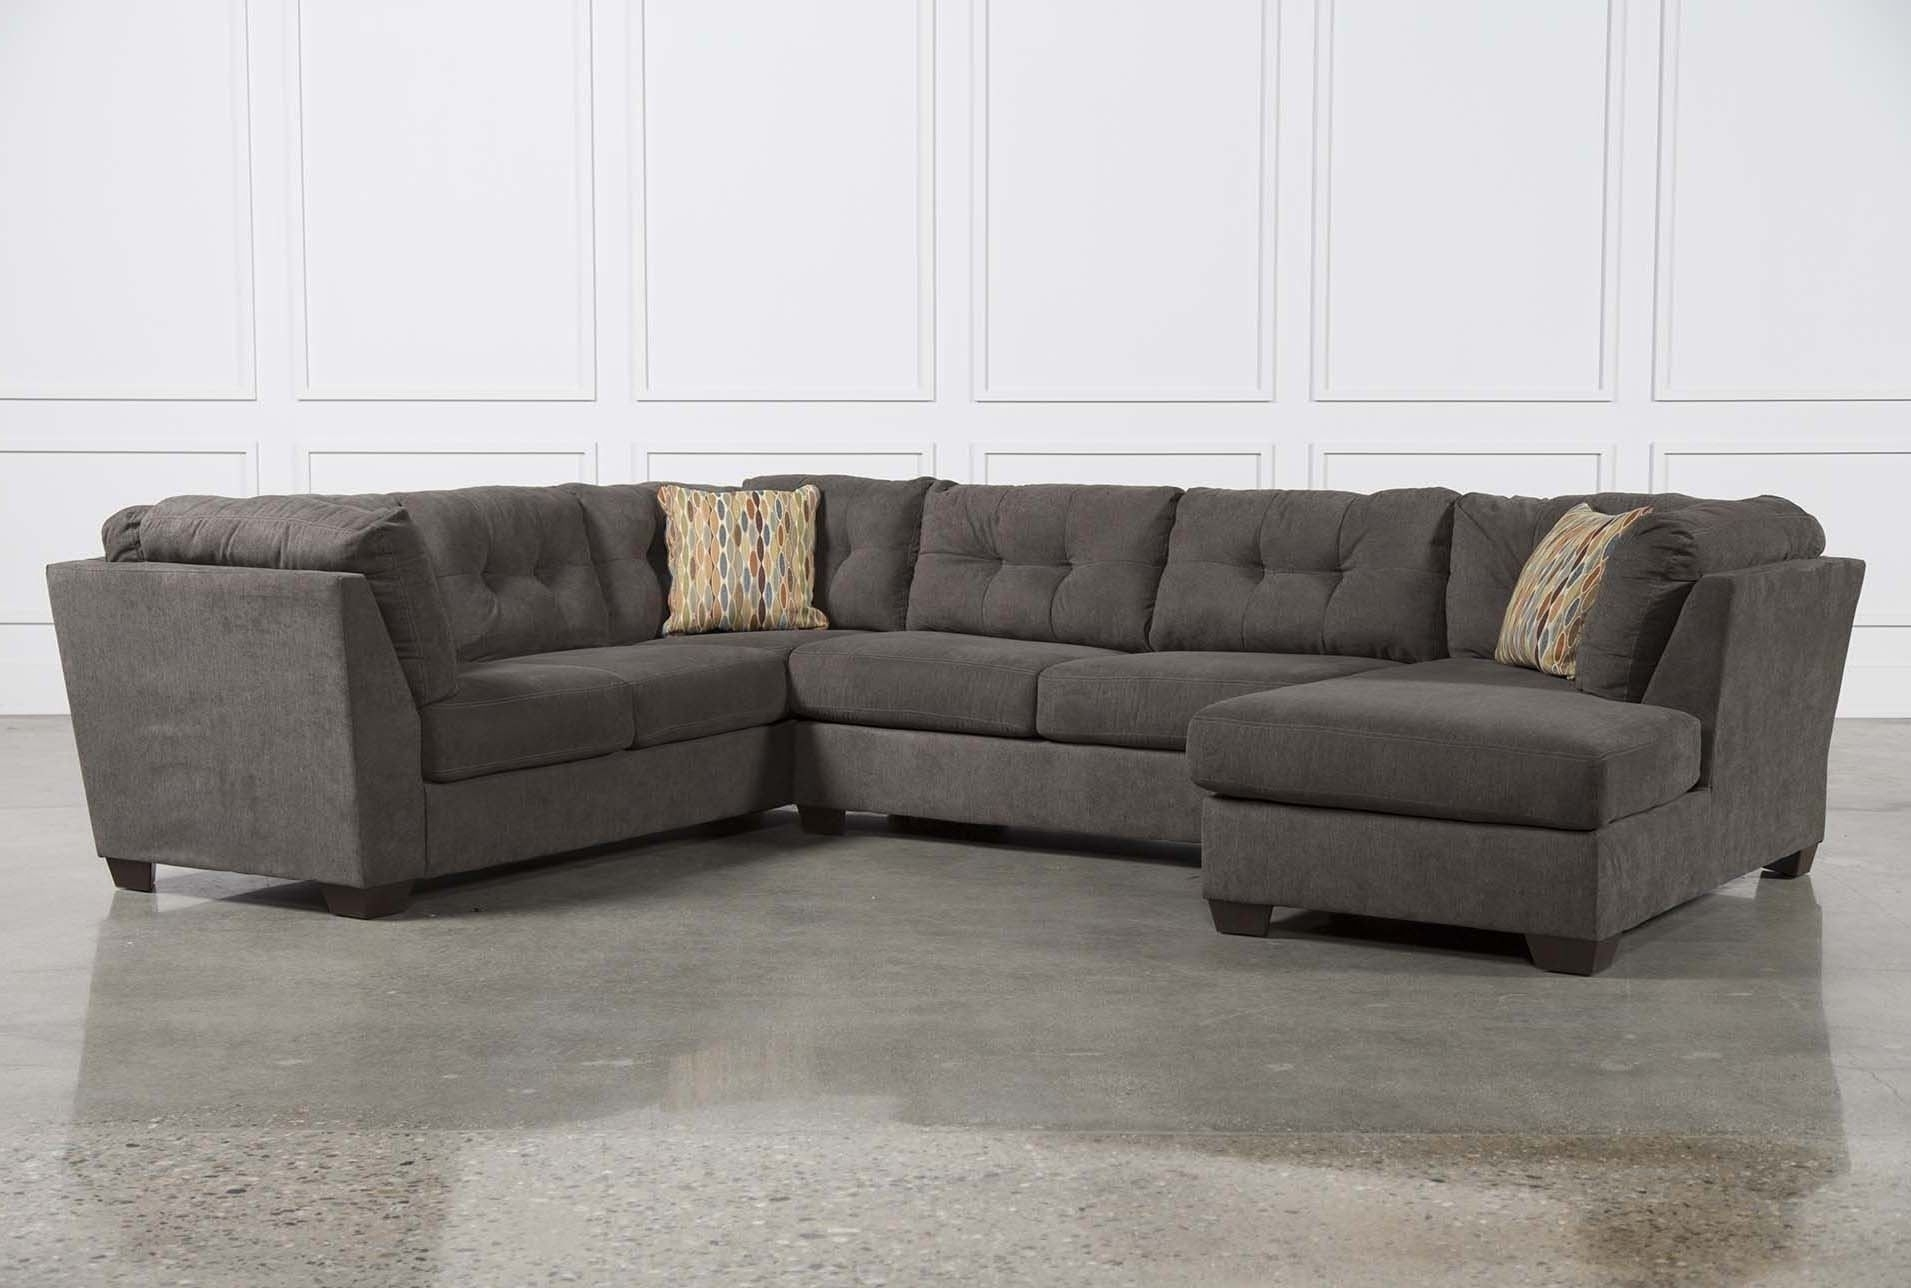 Featured Image of Mcdade Graphite 2 Piece Sectionals With Laf Chaise